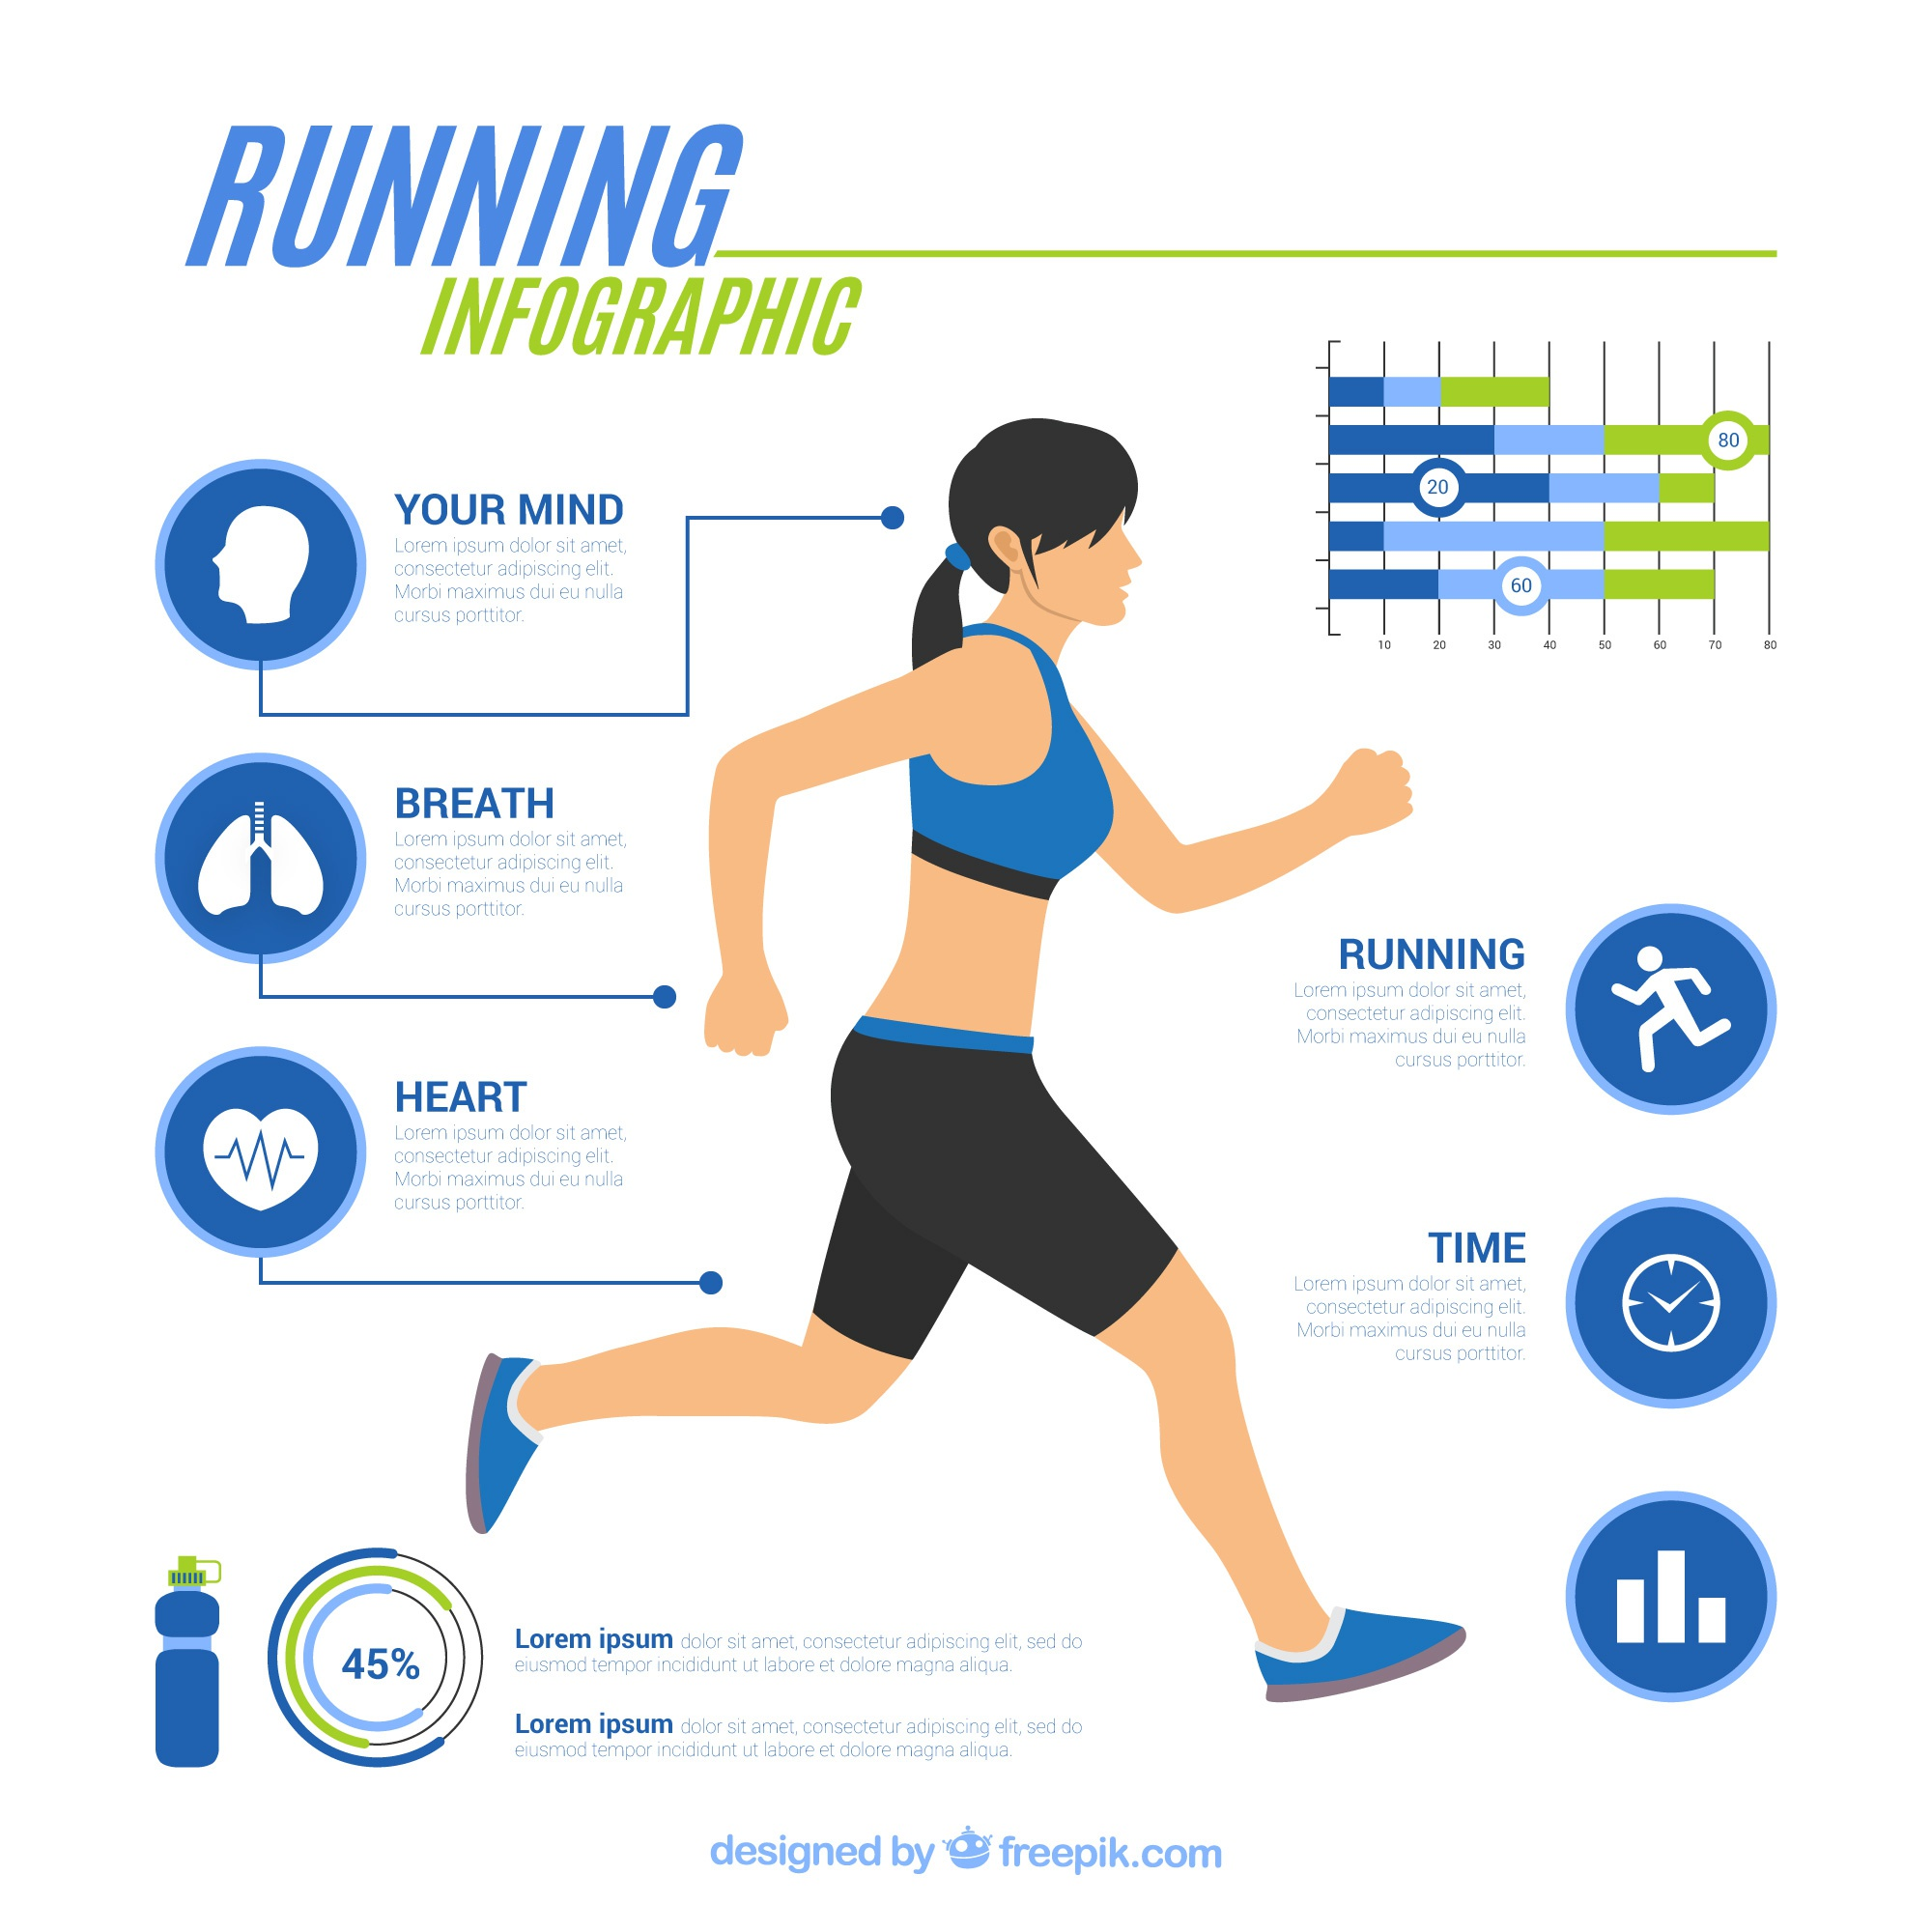 Running infographic with health information